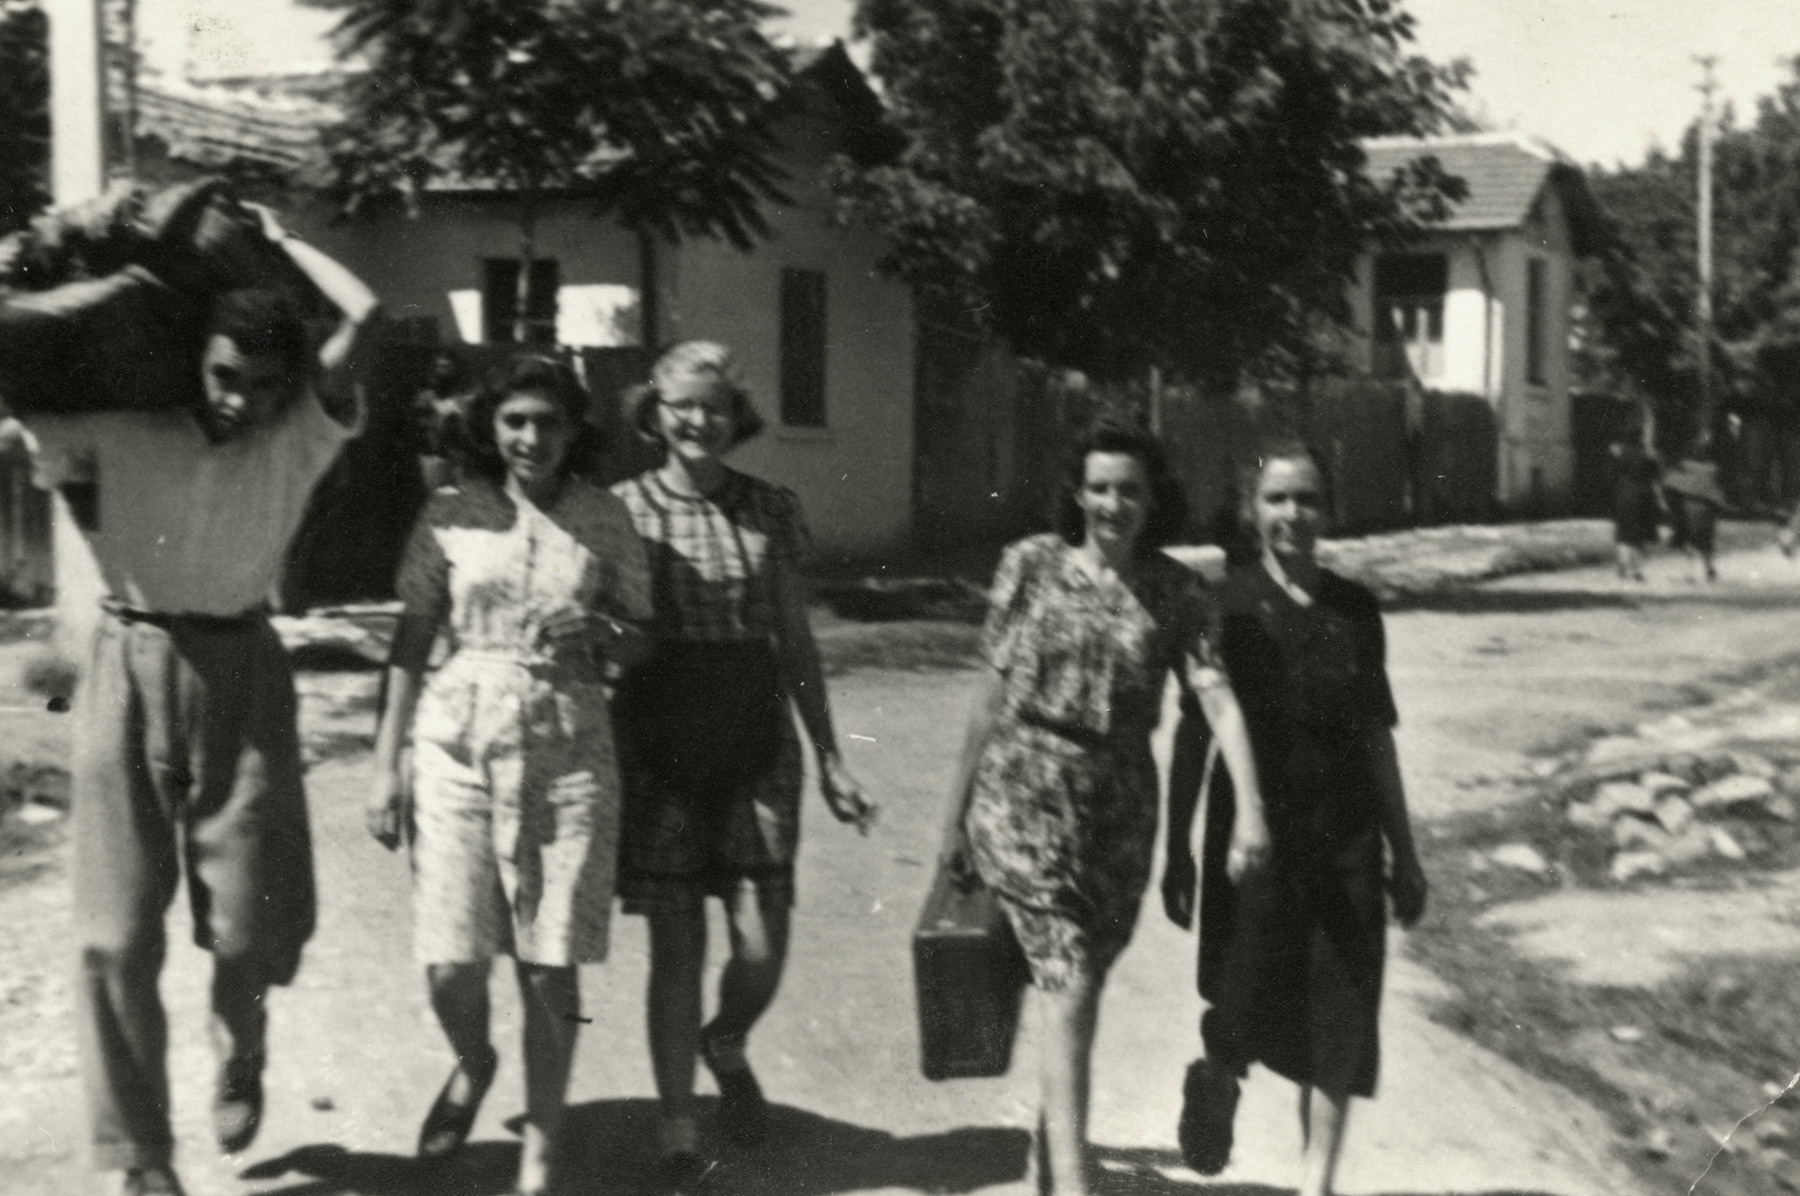 Friends greet two Communists who had been interned during the war.  Reine Behar is pictured third from the left.